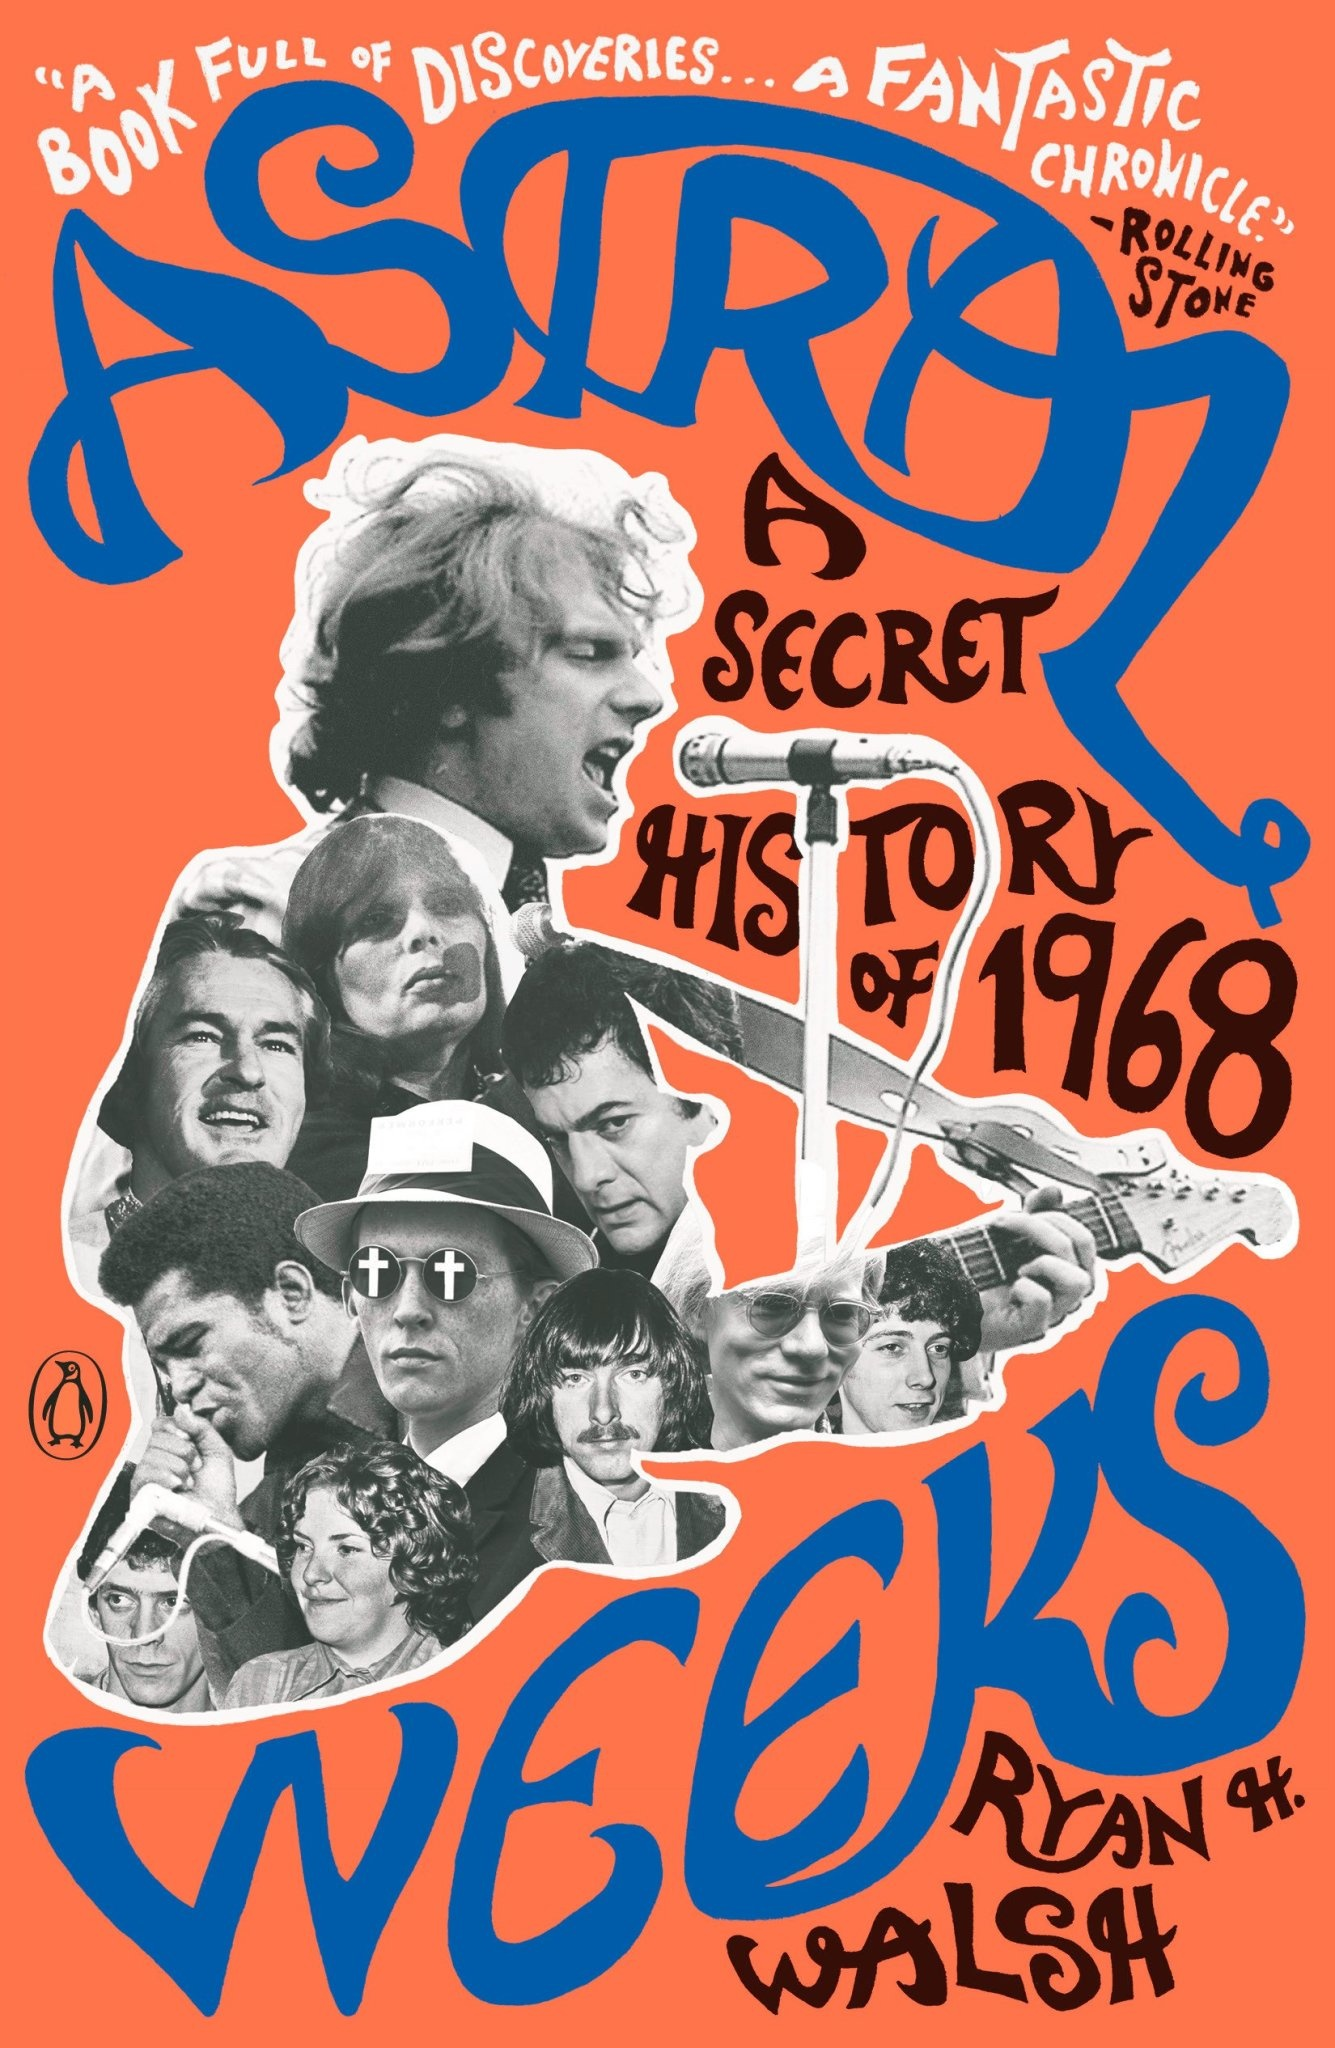 About Music Astral Weeks: A Secret History Of 1968 - Ryan H. Walsh